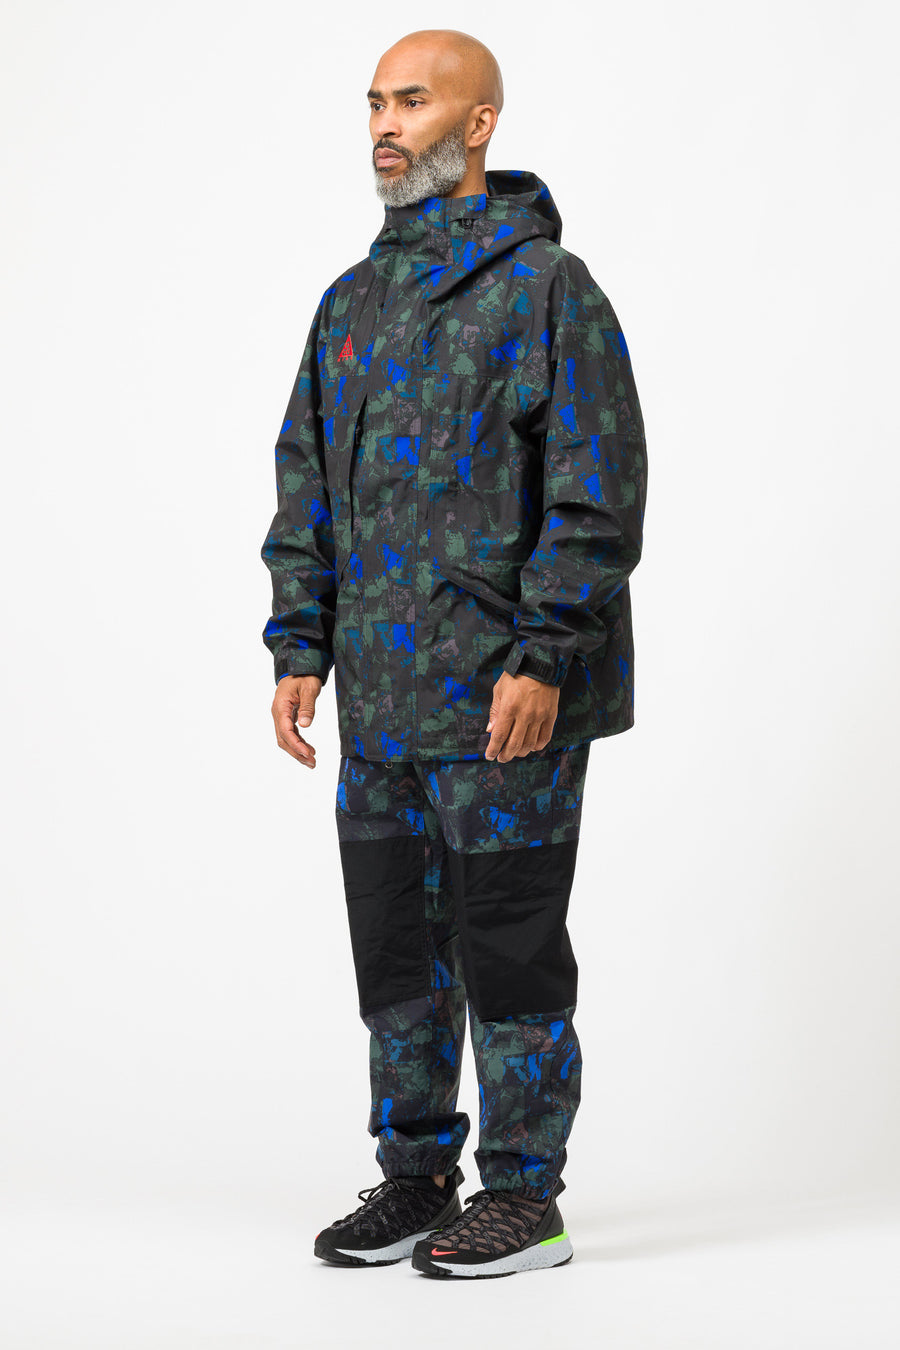 Nike ACG Gore-Tex Allover Print Jacket in Racer Blue/Habanero Red - Notre